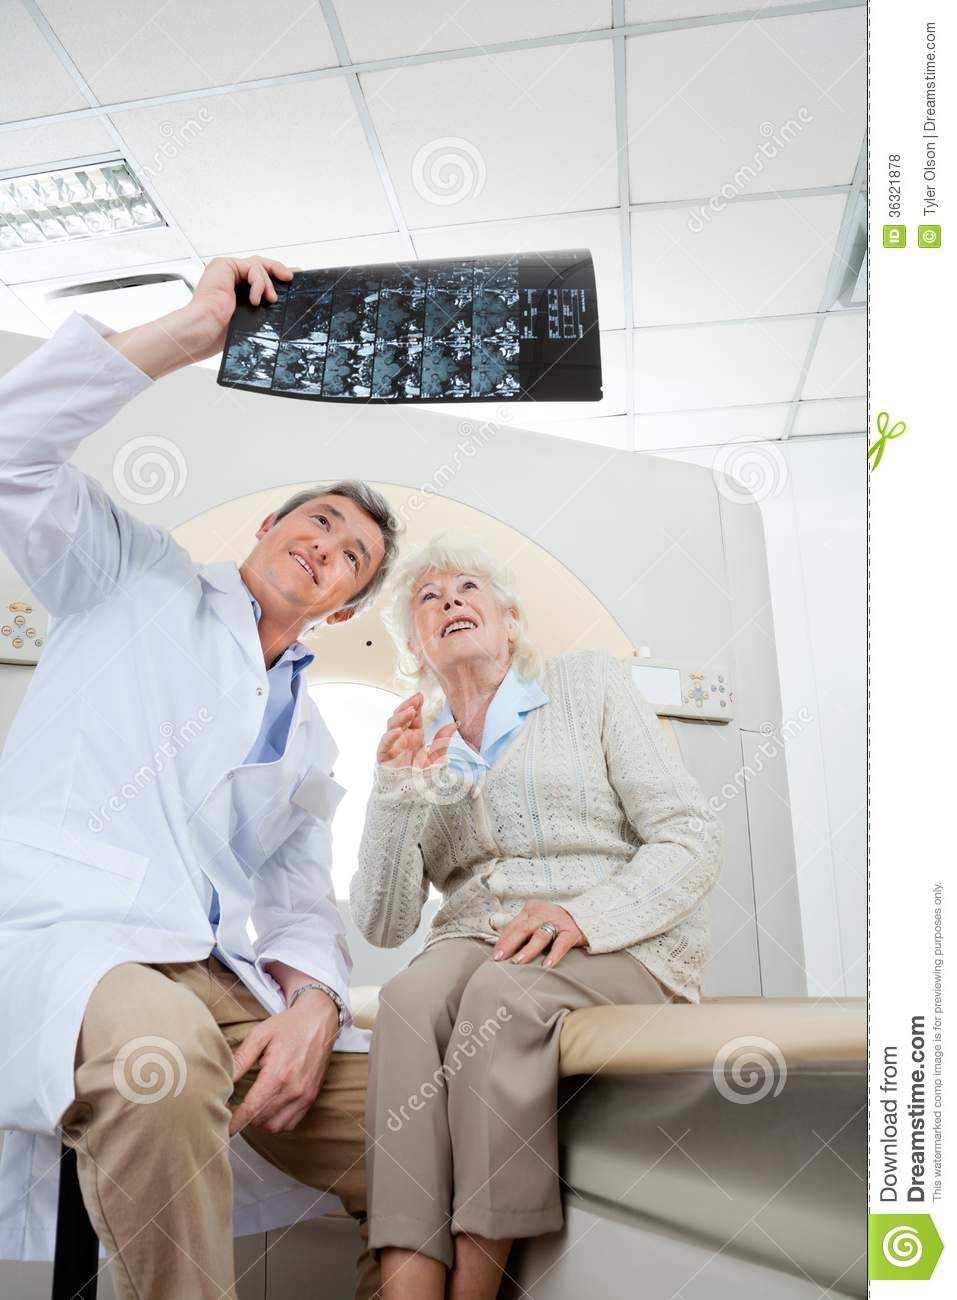 radiologist with patient looking at x-ray stock photo - image of